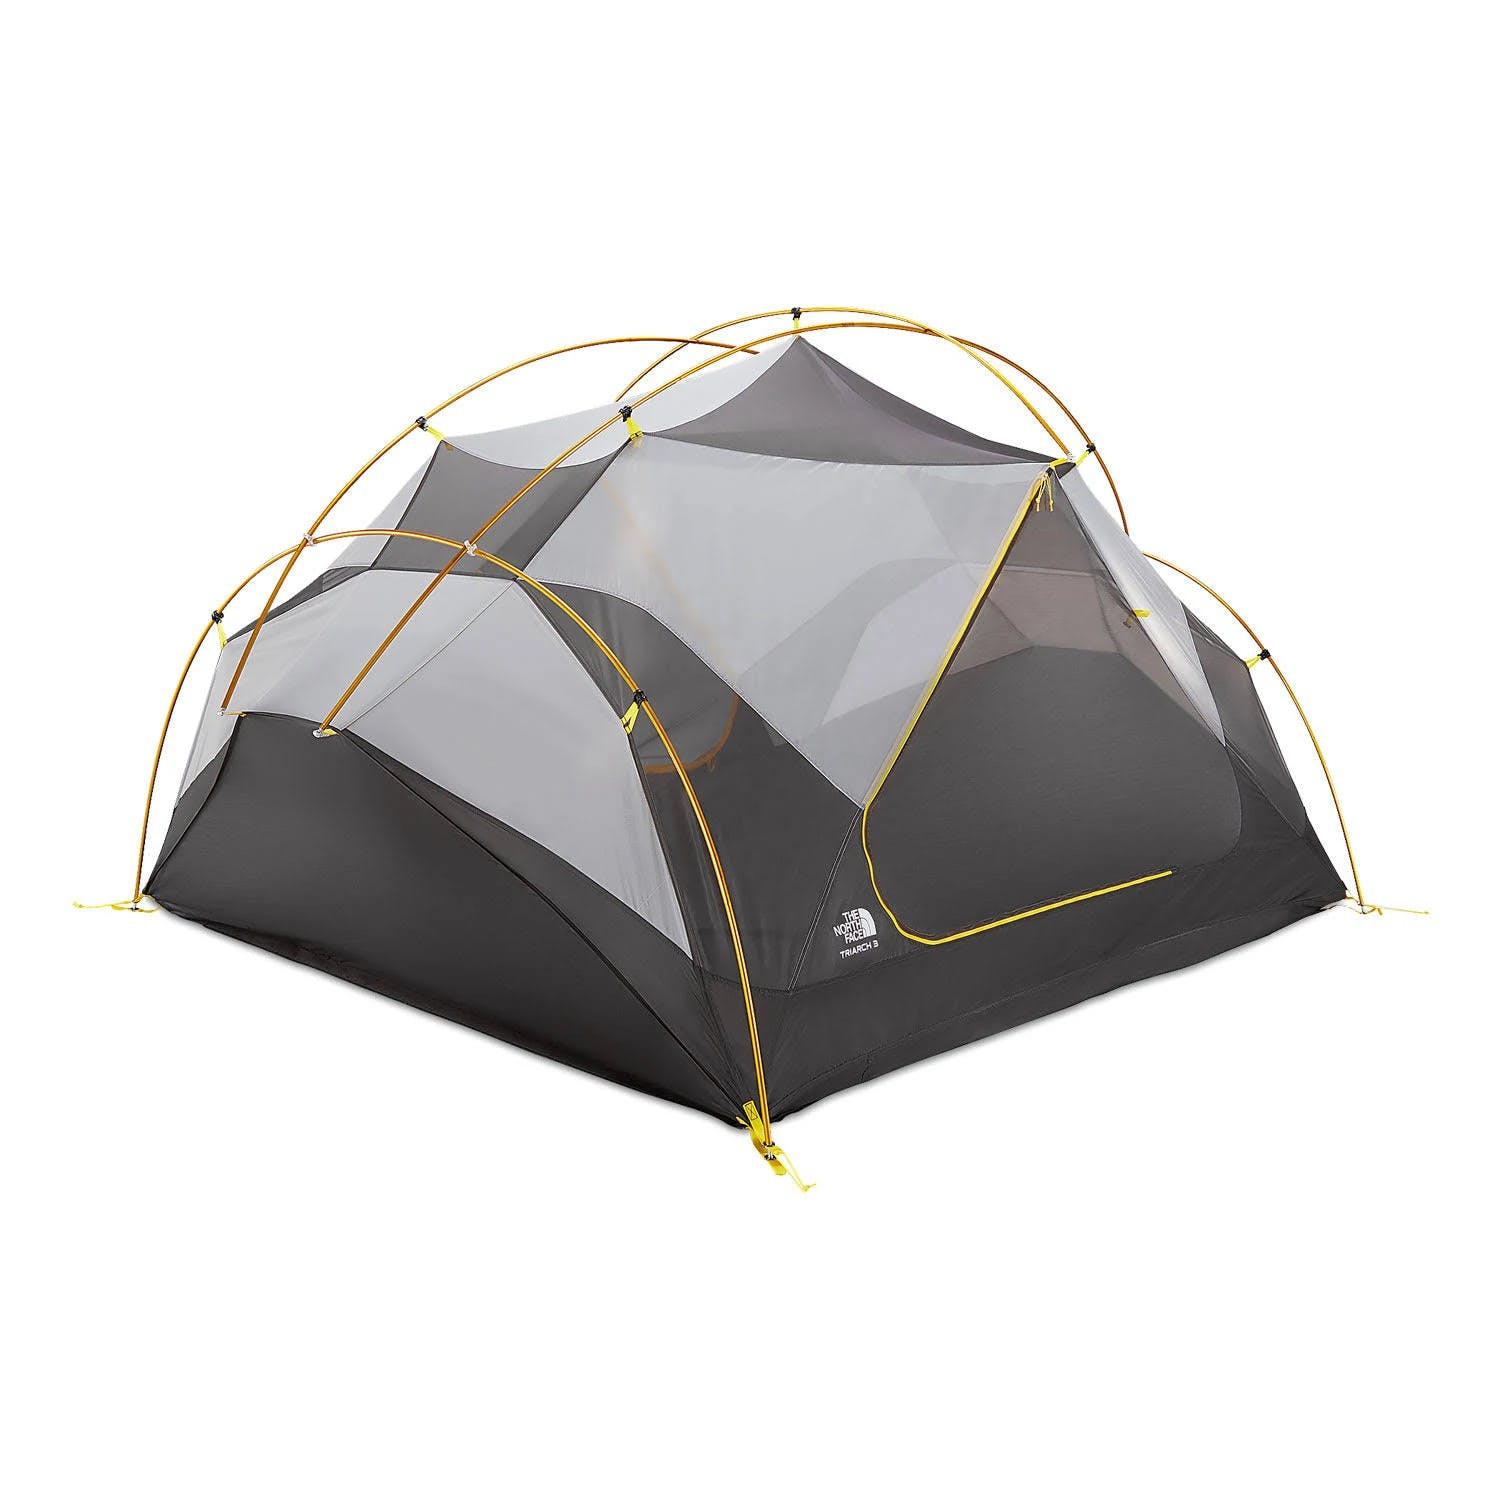 The North Face Triarch 3 Tent: Canary Yellow